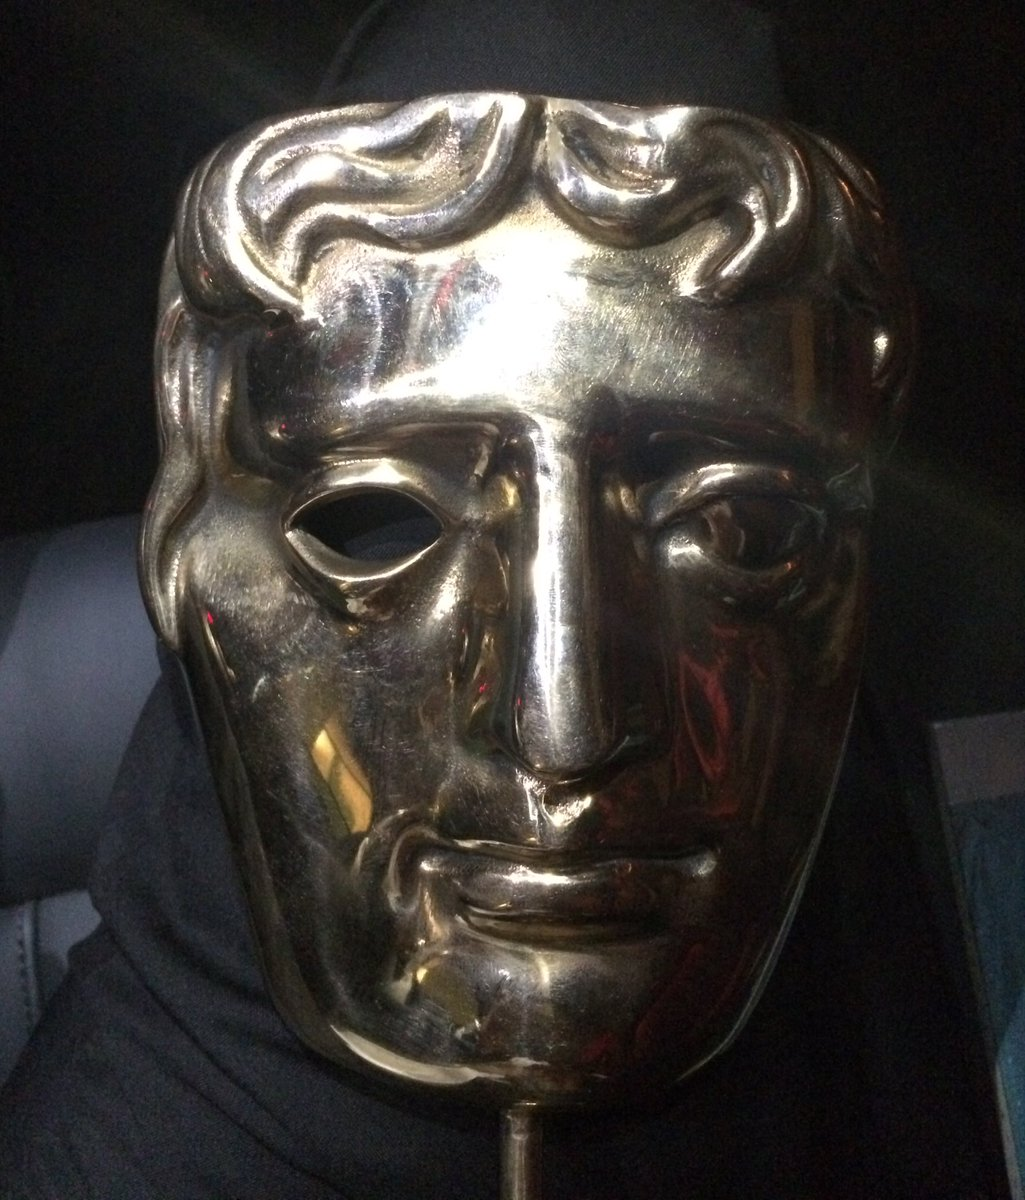 Thank you to all of the crew and all of our contributors who trusted in us #AMY #EEBAFTAs @AmyFilmUK @AmyTheMovie x https://t.co/Kt4lxtDSe8